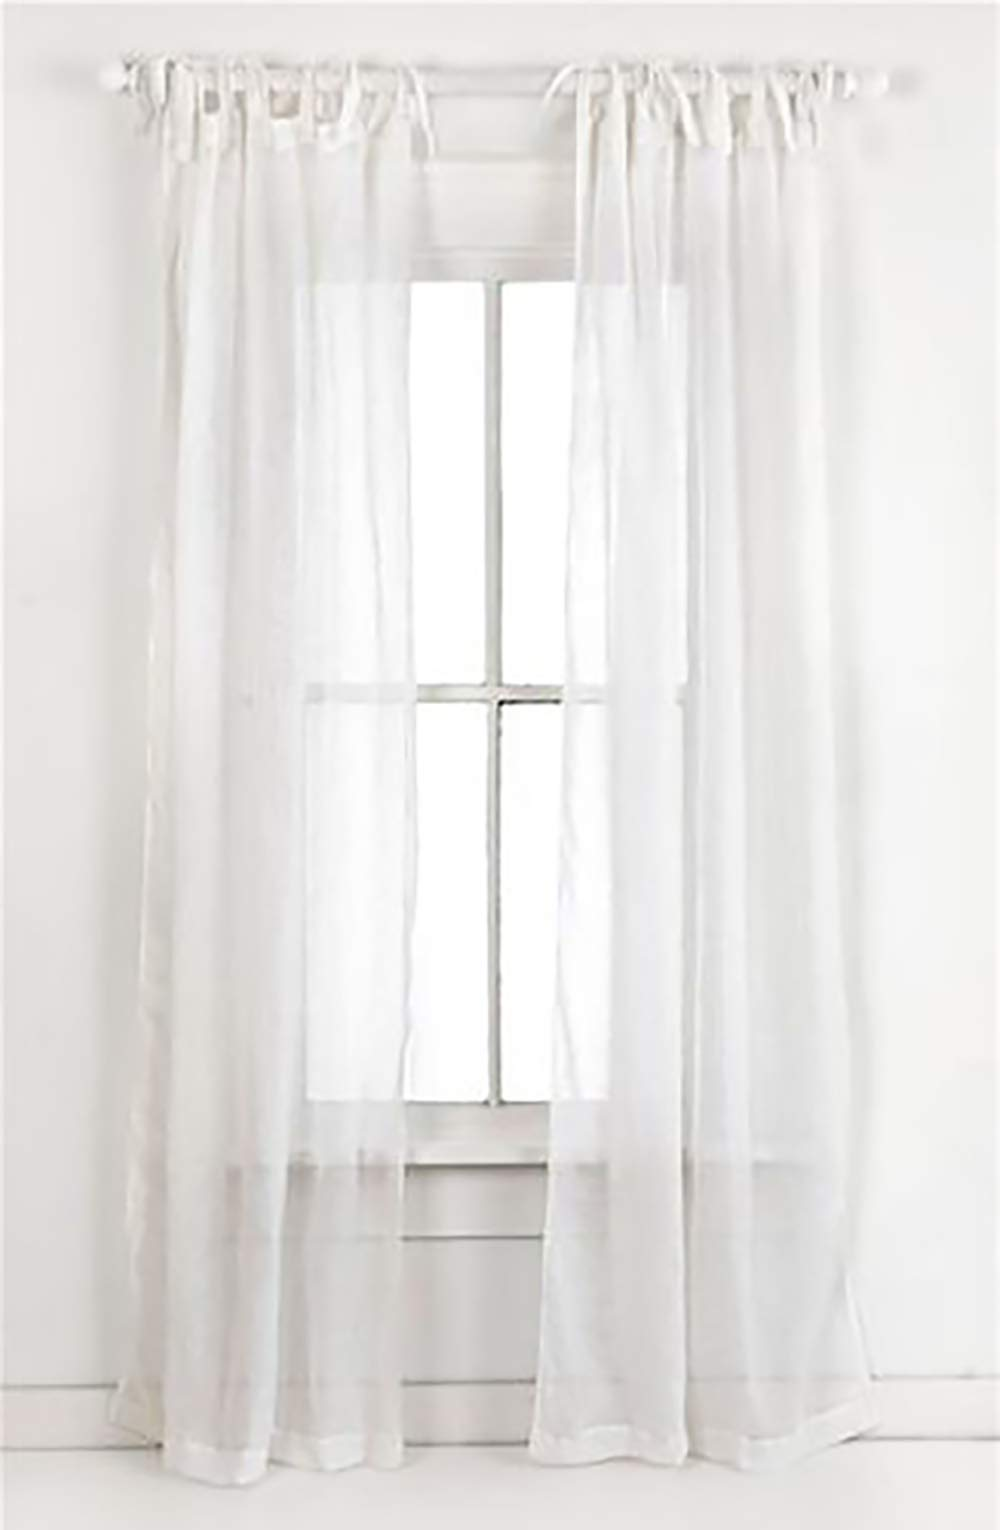 Cipheres White Cotton Voile Semi-Sheer Tie Top Curtains 54 by 95 inch - Set of 2